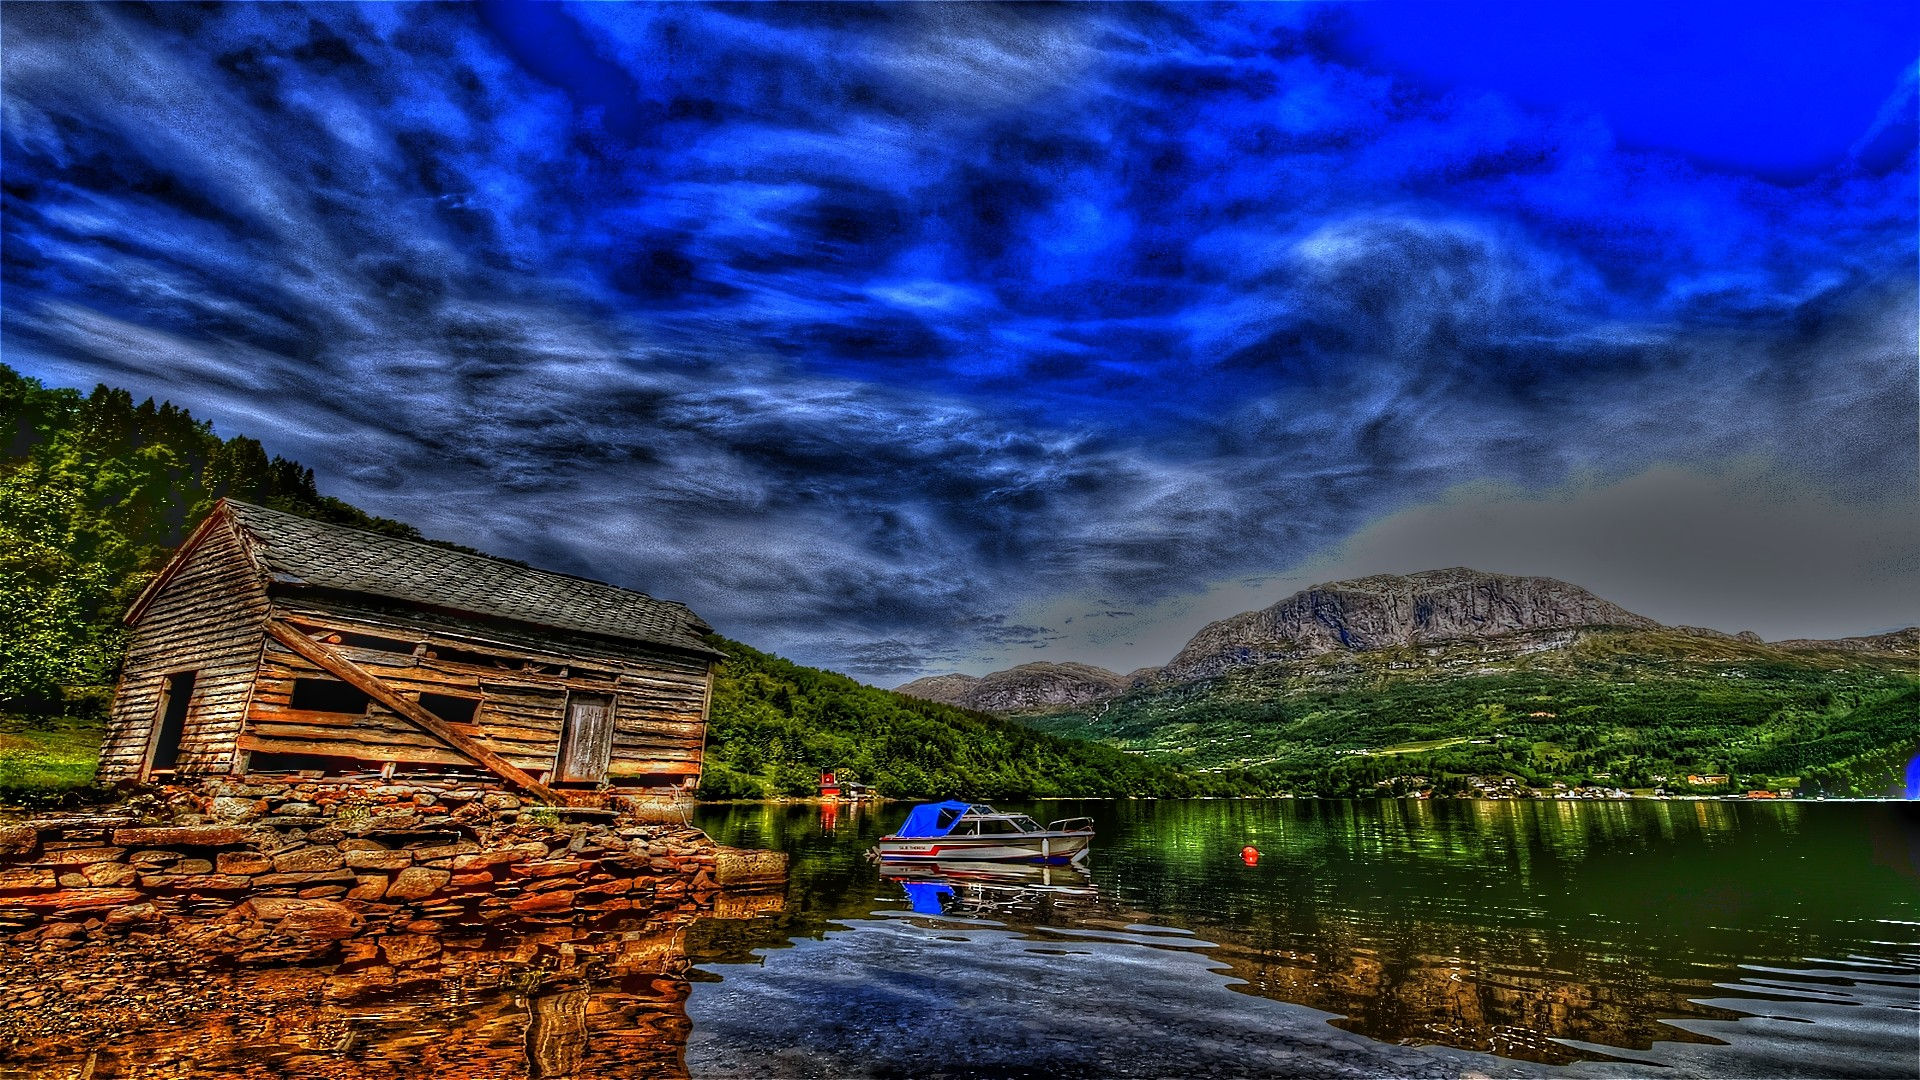 Download Landscapes HDR Wallpaper 1920x1080 Wallpoper 1920x1080